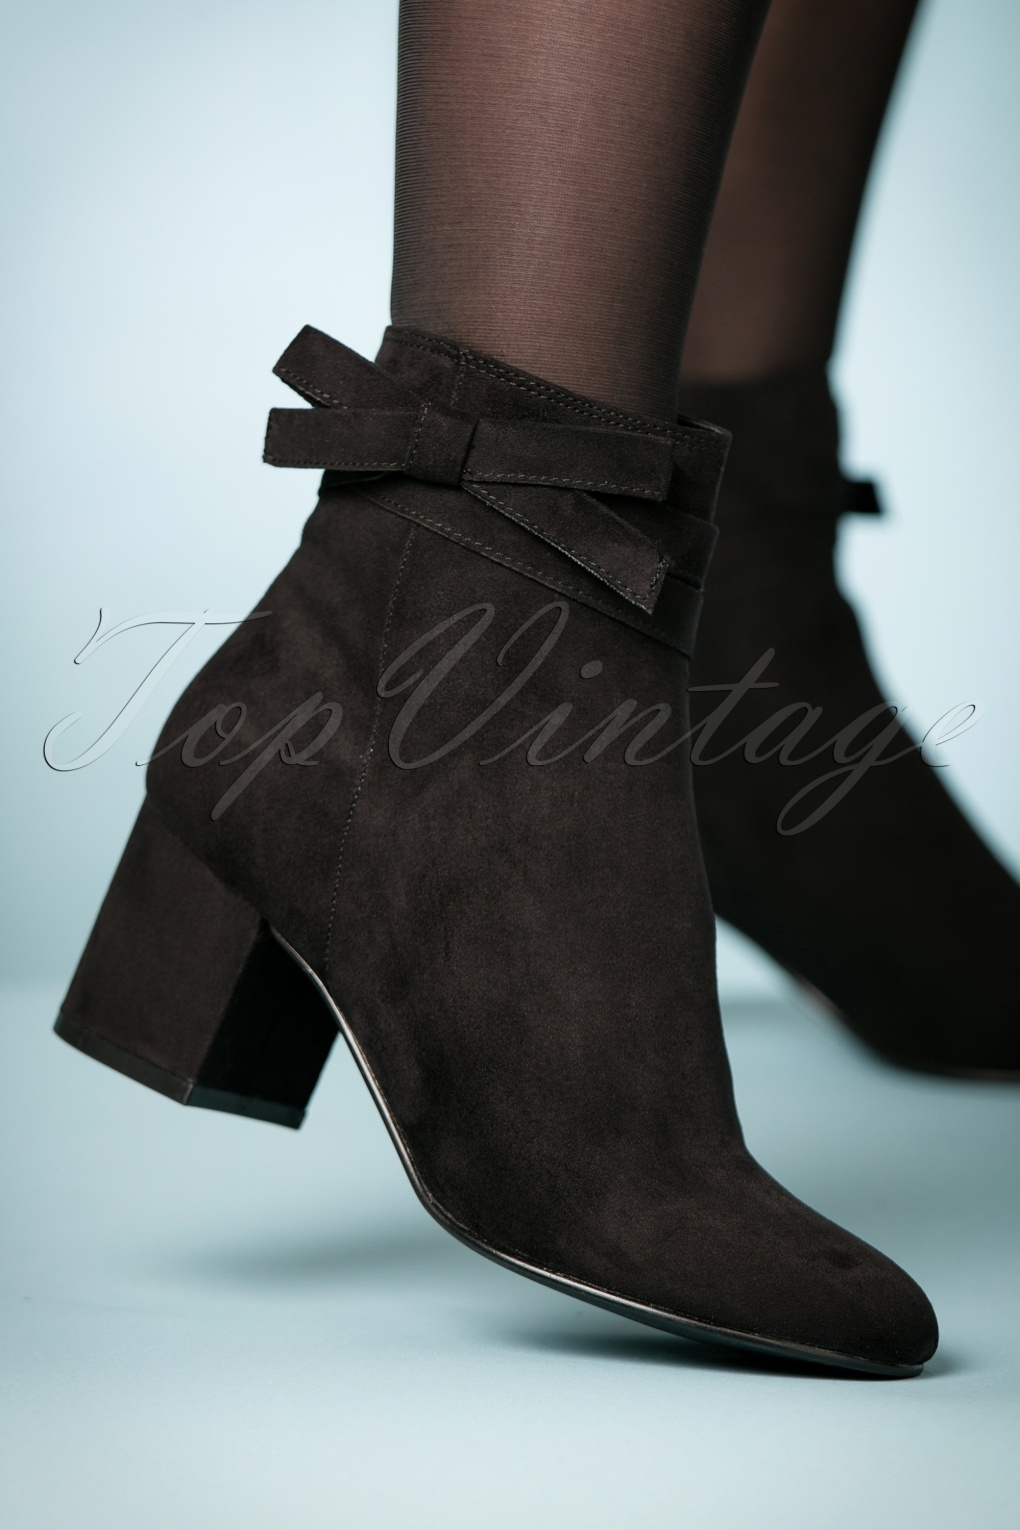 Retro Boots, Granny Boots, 70s Boots 60s Classy Bow Ankle Booties in Black £57.73 AT vintagedancer.com